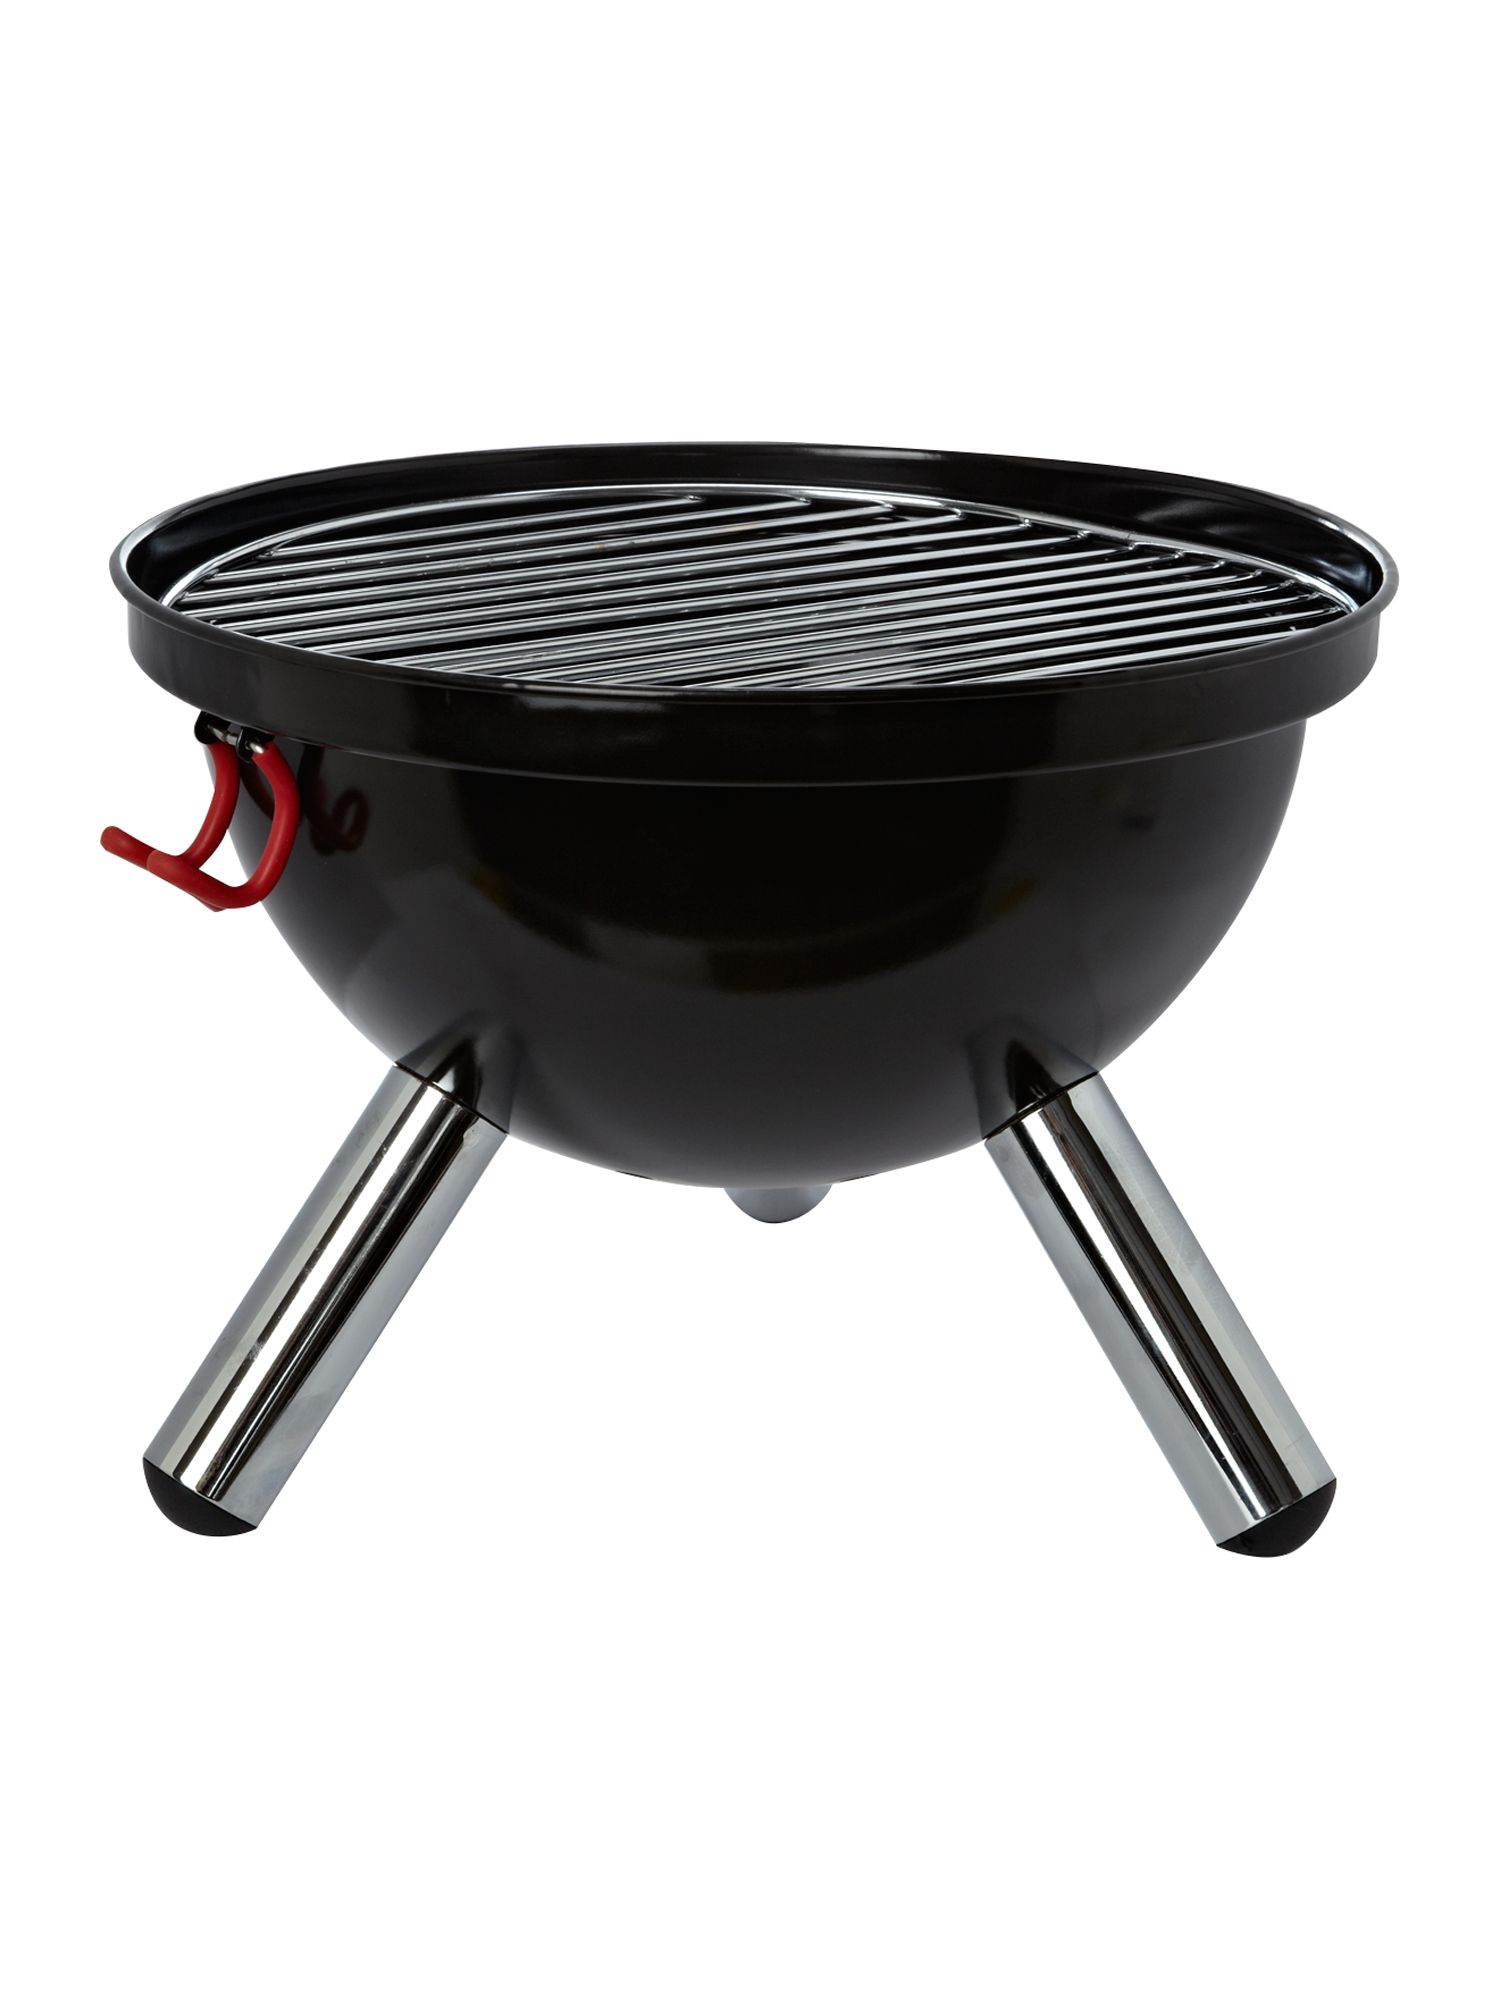 Fyrkat mini picnic charcoal barbecue grill, black